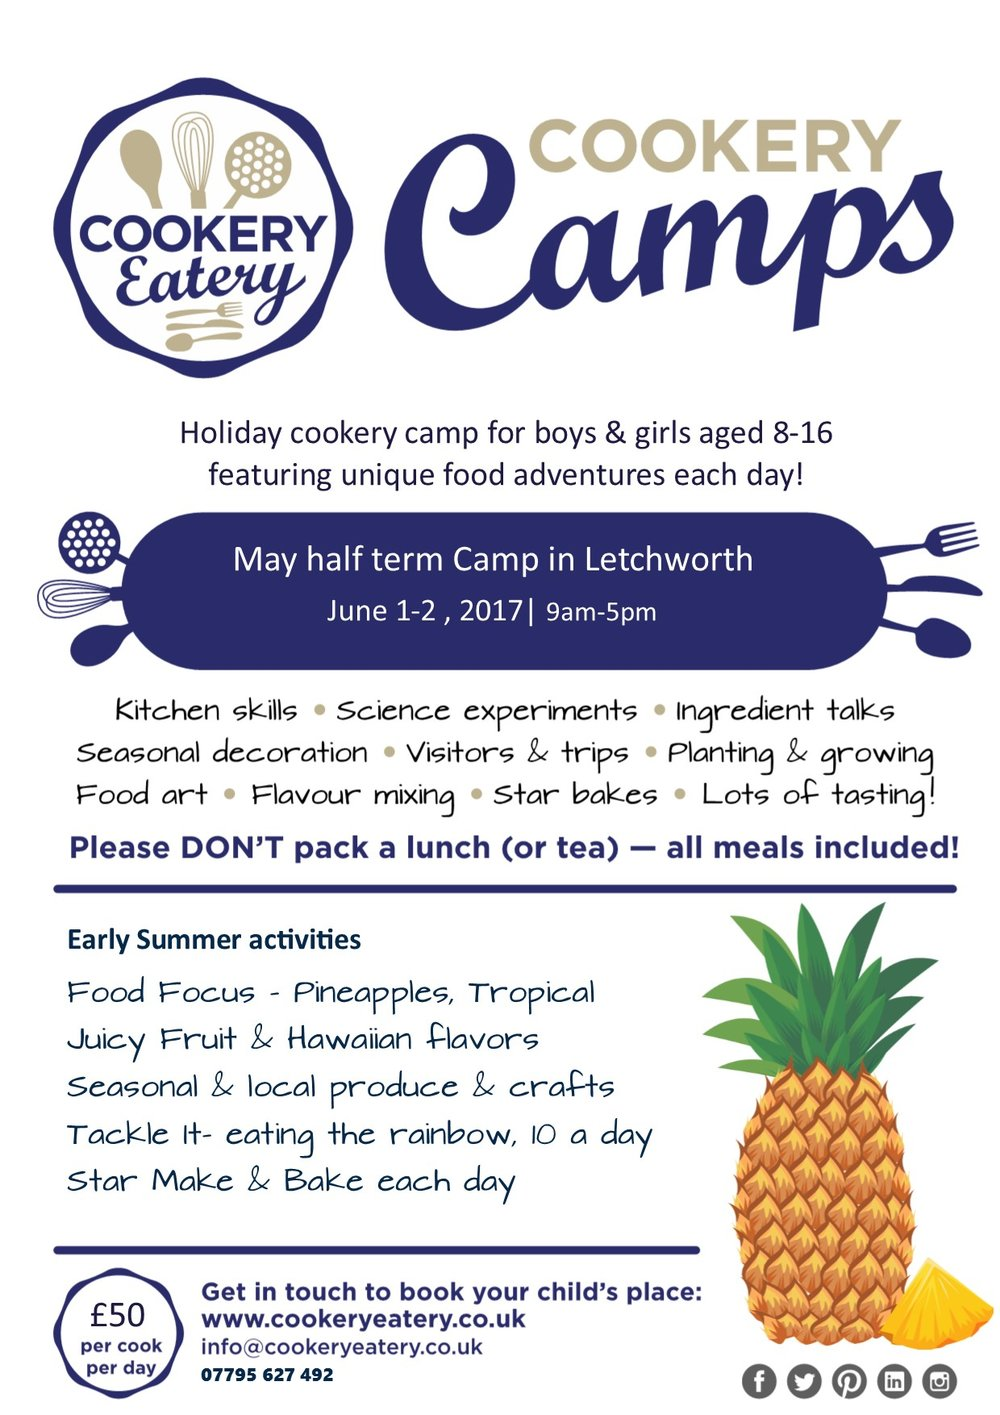 Cookery Camp.May half term 2017.Letchworth.FLYER.jpg